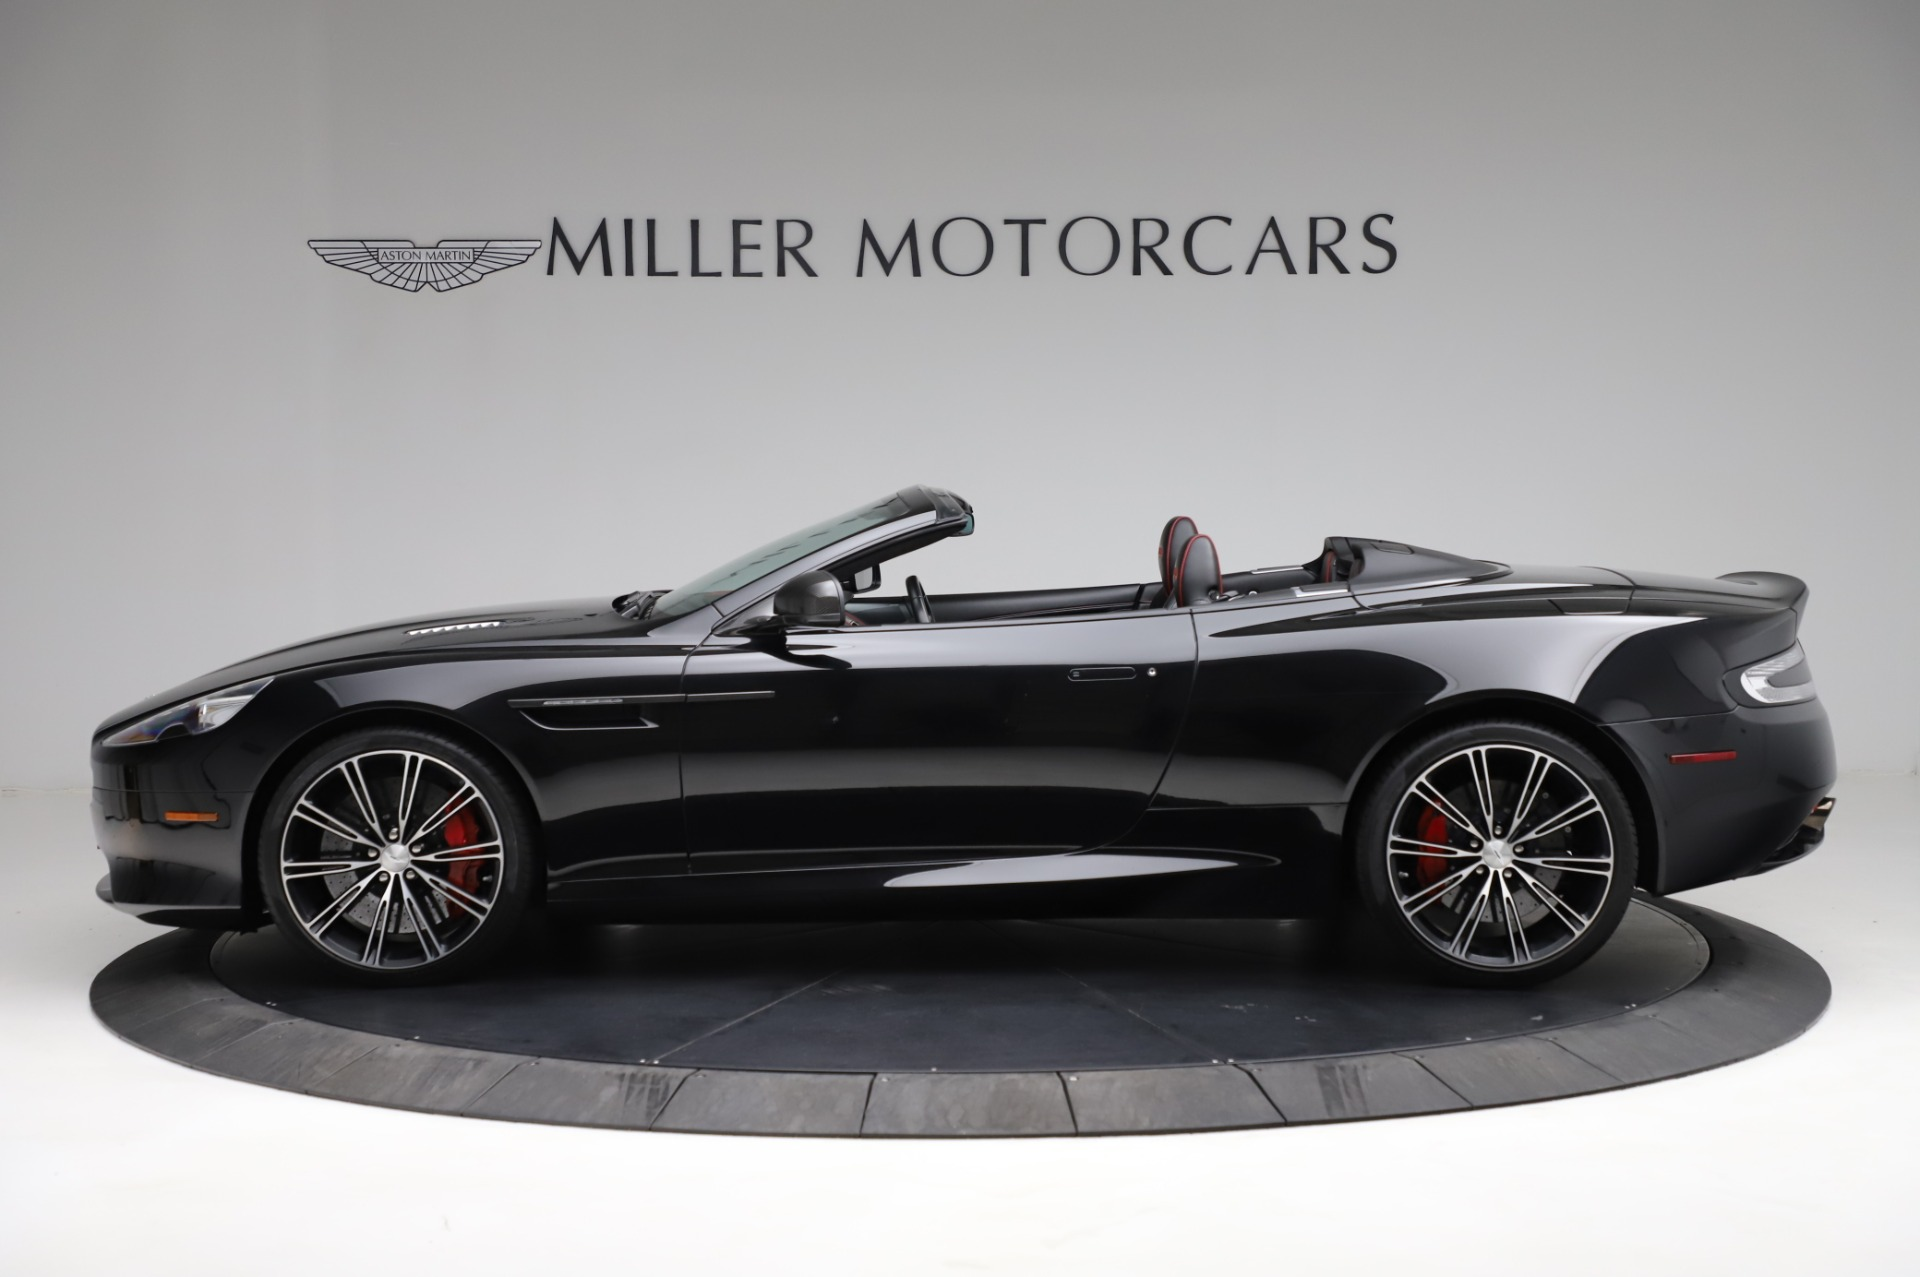 Used 2015 Aston Martin DB9 Carbon Edition Volante For Sale In Westport, CT 1919_p2